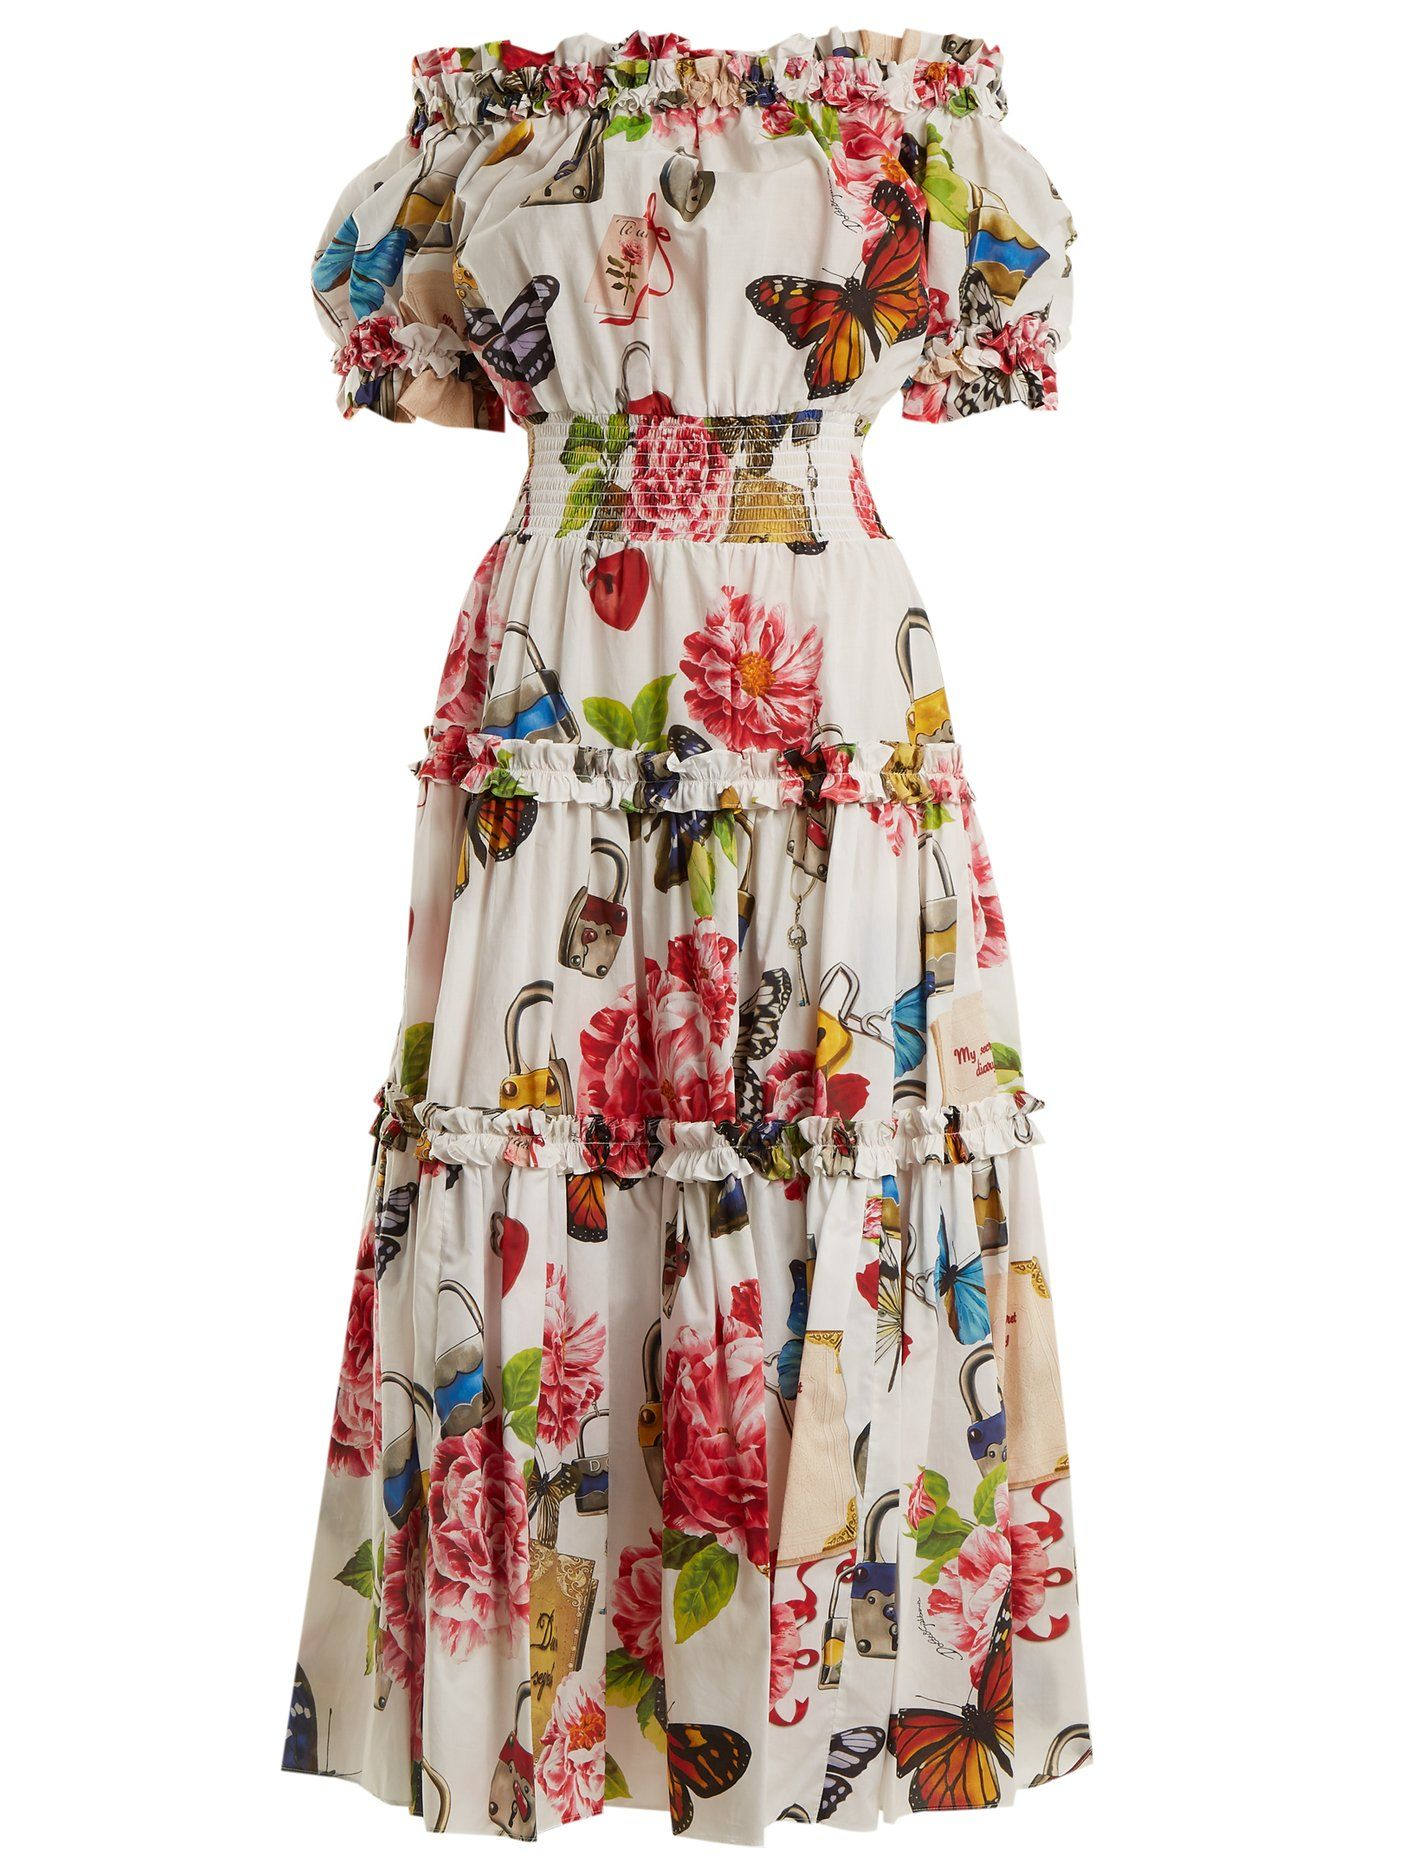 859f904aa2 Padlock and garden-print off-shoulder dress | Dolce & Gabbana |  MATCHESFASHION.COM US